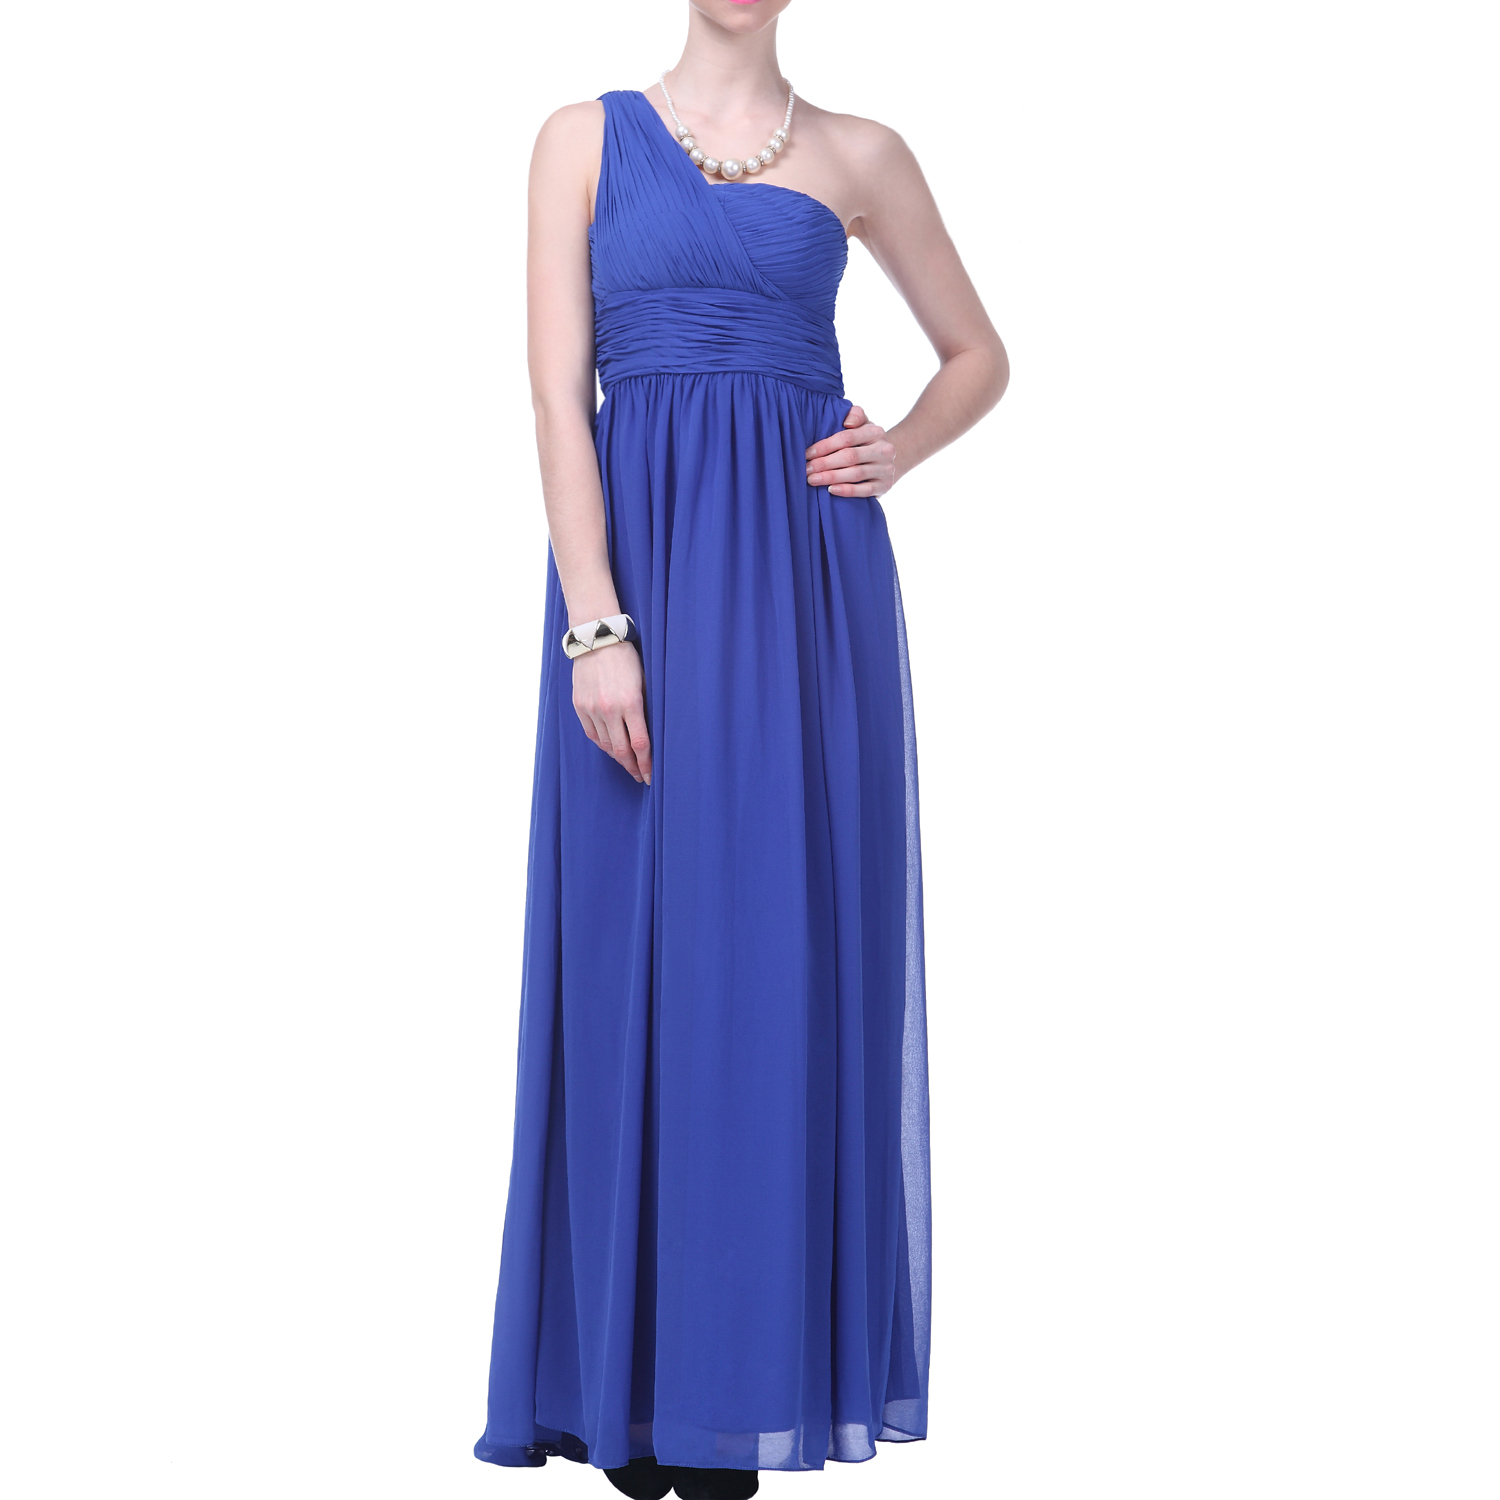 Formal Dress One Shoulder Draped Bridesmaid Wedding Party Prom Long ...